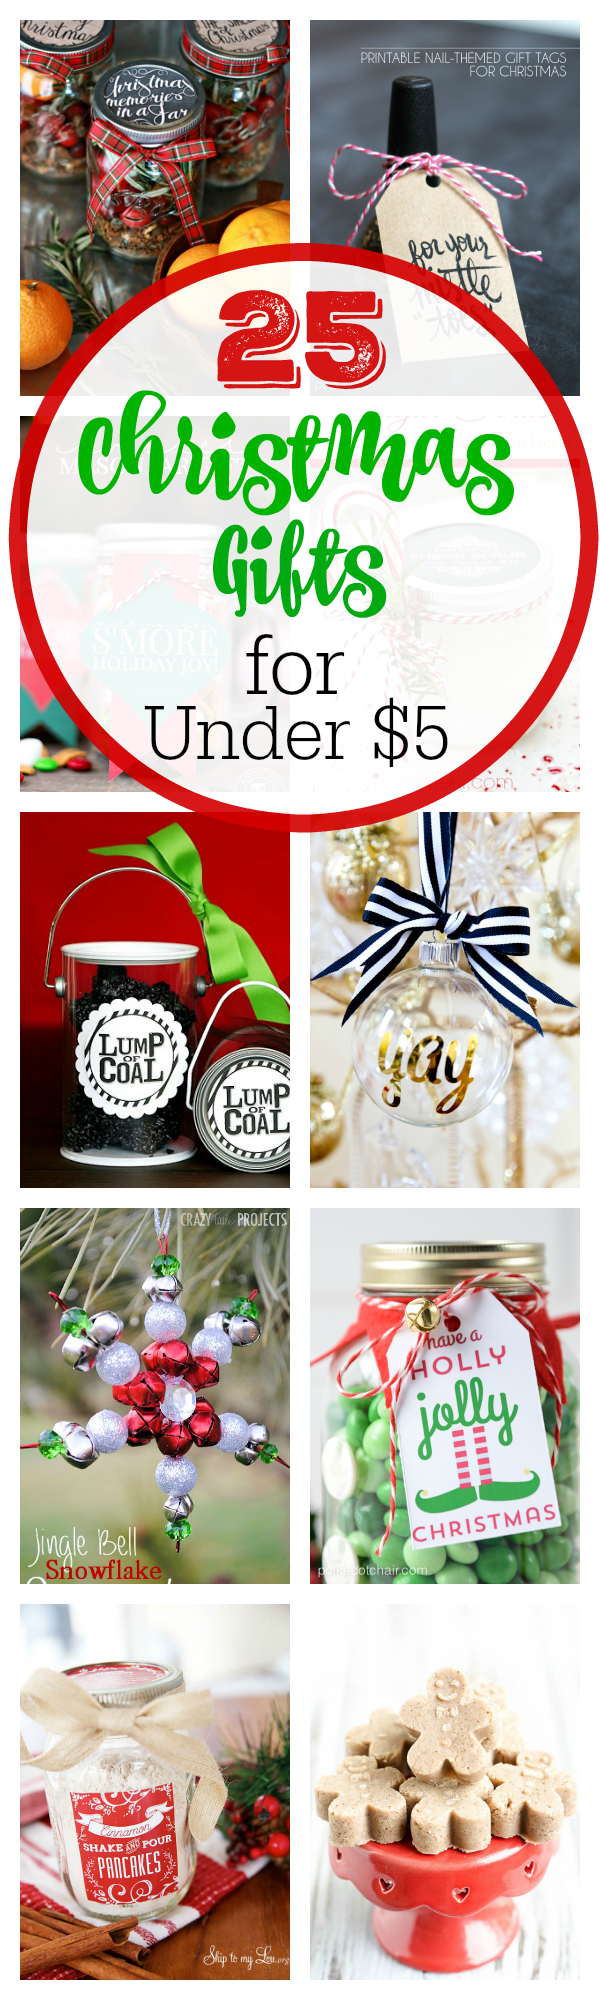 pin it 25 cheap gifts for christmas for under 5 these cute christmas and holiday gift - Christmas Gifts Under 5 Dollars